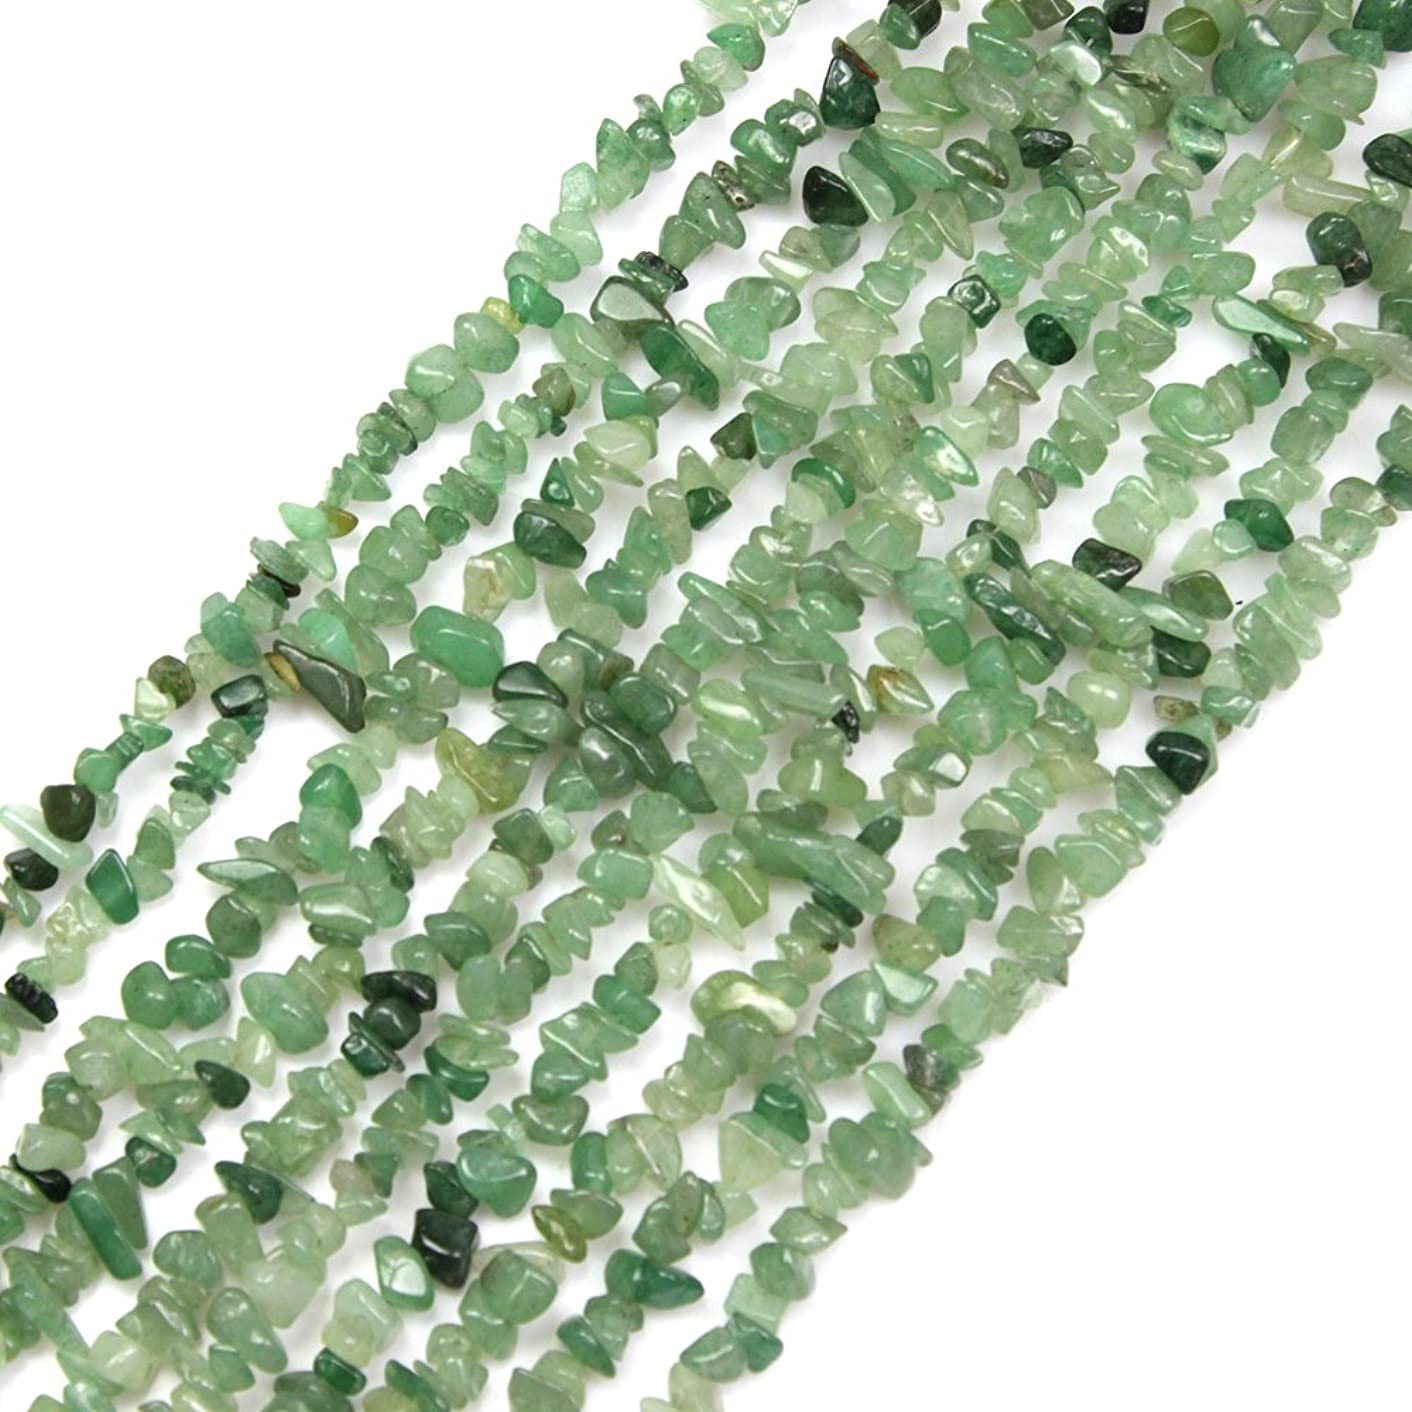 JARTC Natural Irregular Broken Green Aventurine Chip 6-8mm 15 Inch Agate Crystal Chip for Jewelry Making DIY Bracelet Necklace Accessory